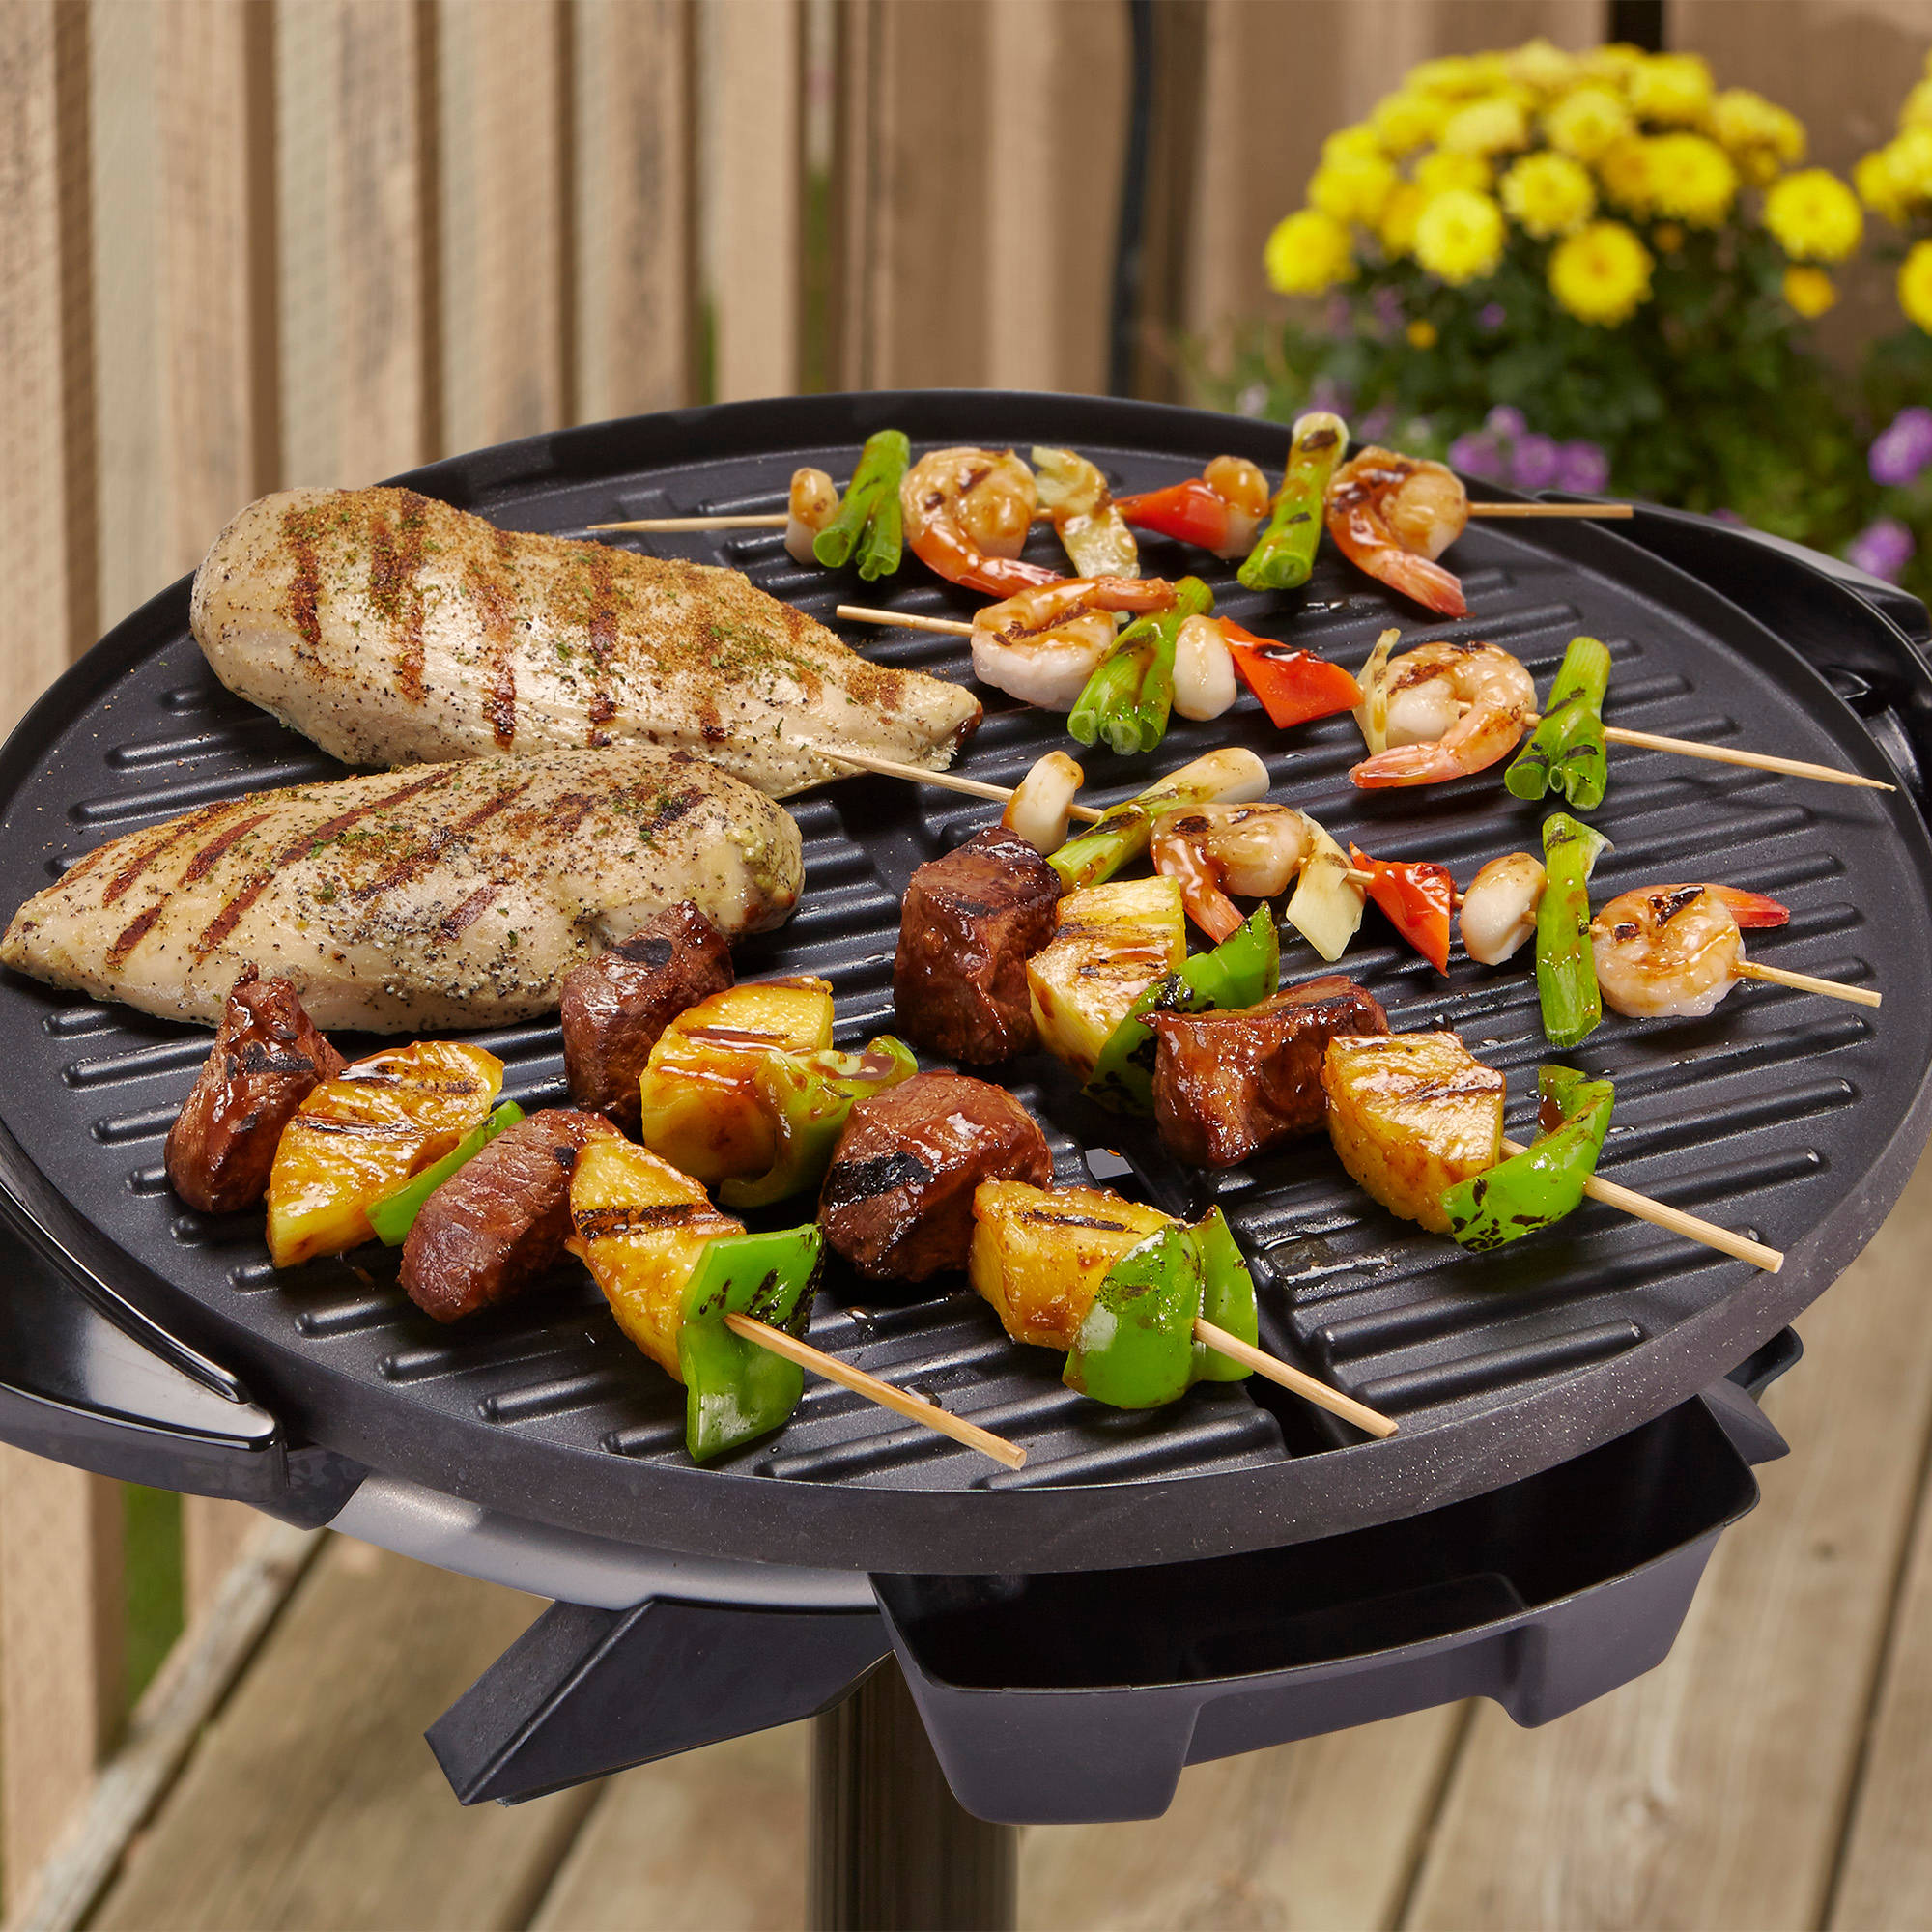 George Foreman 15-Serving Indoor/Outdoor Grill, GFO240S - Walmart.com